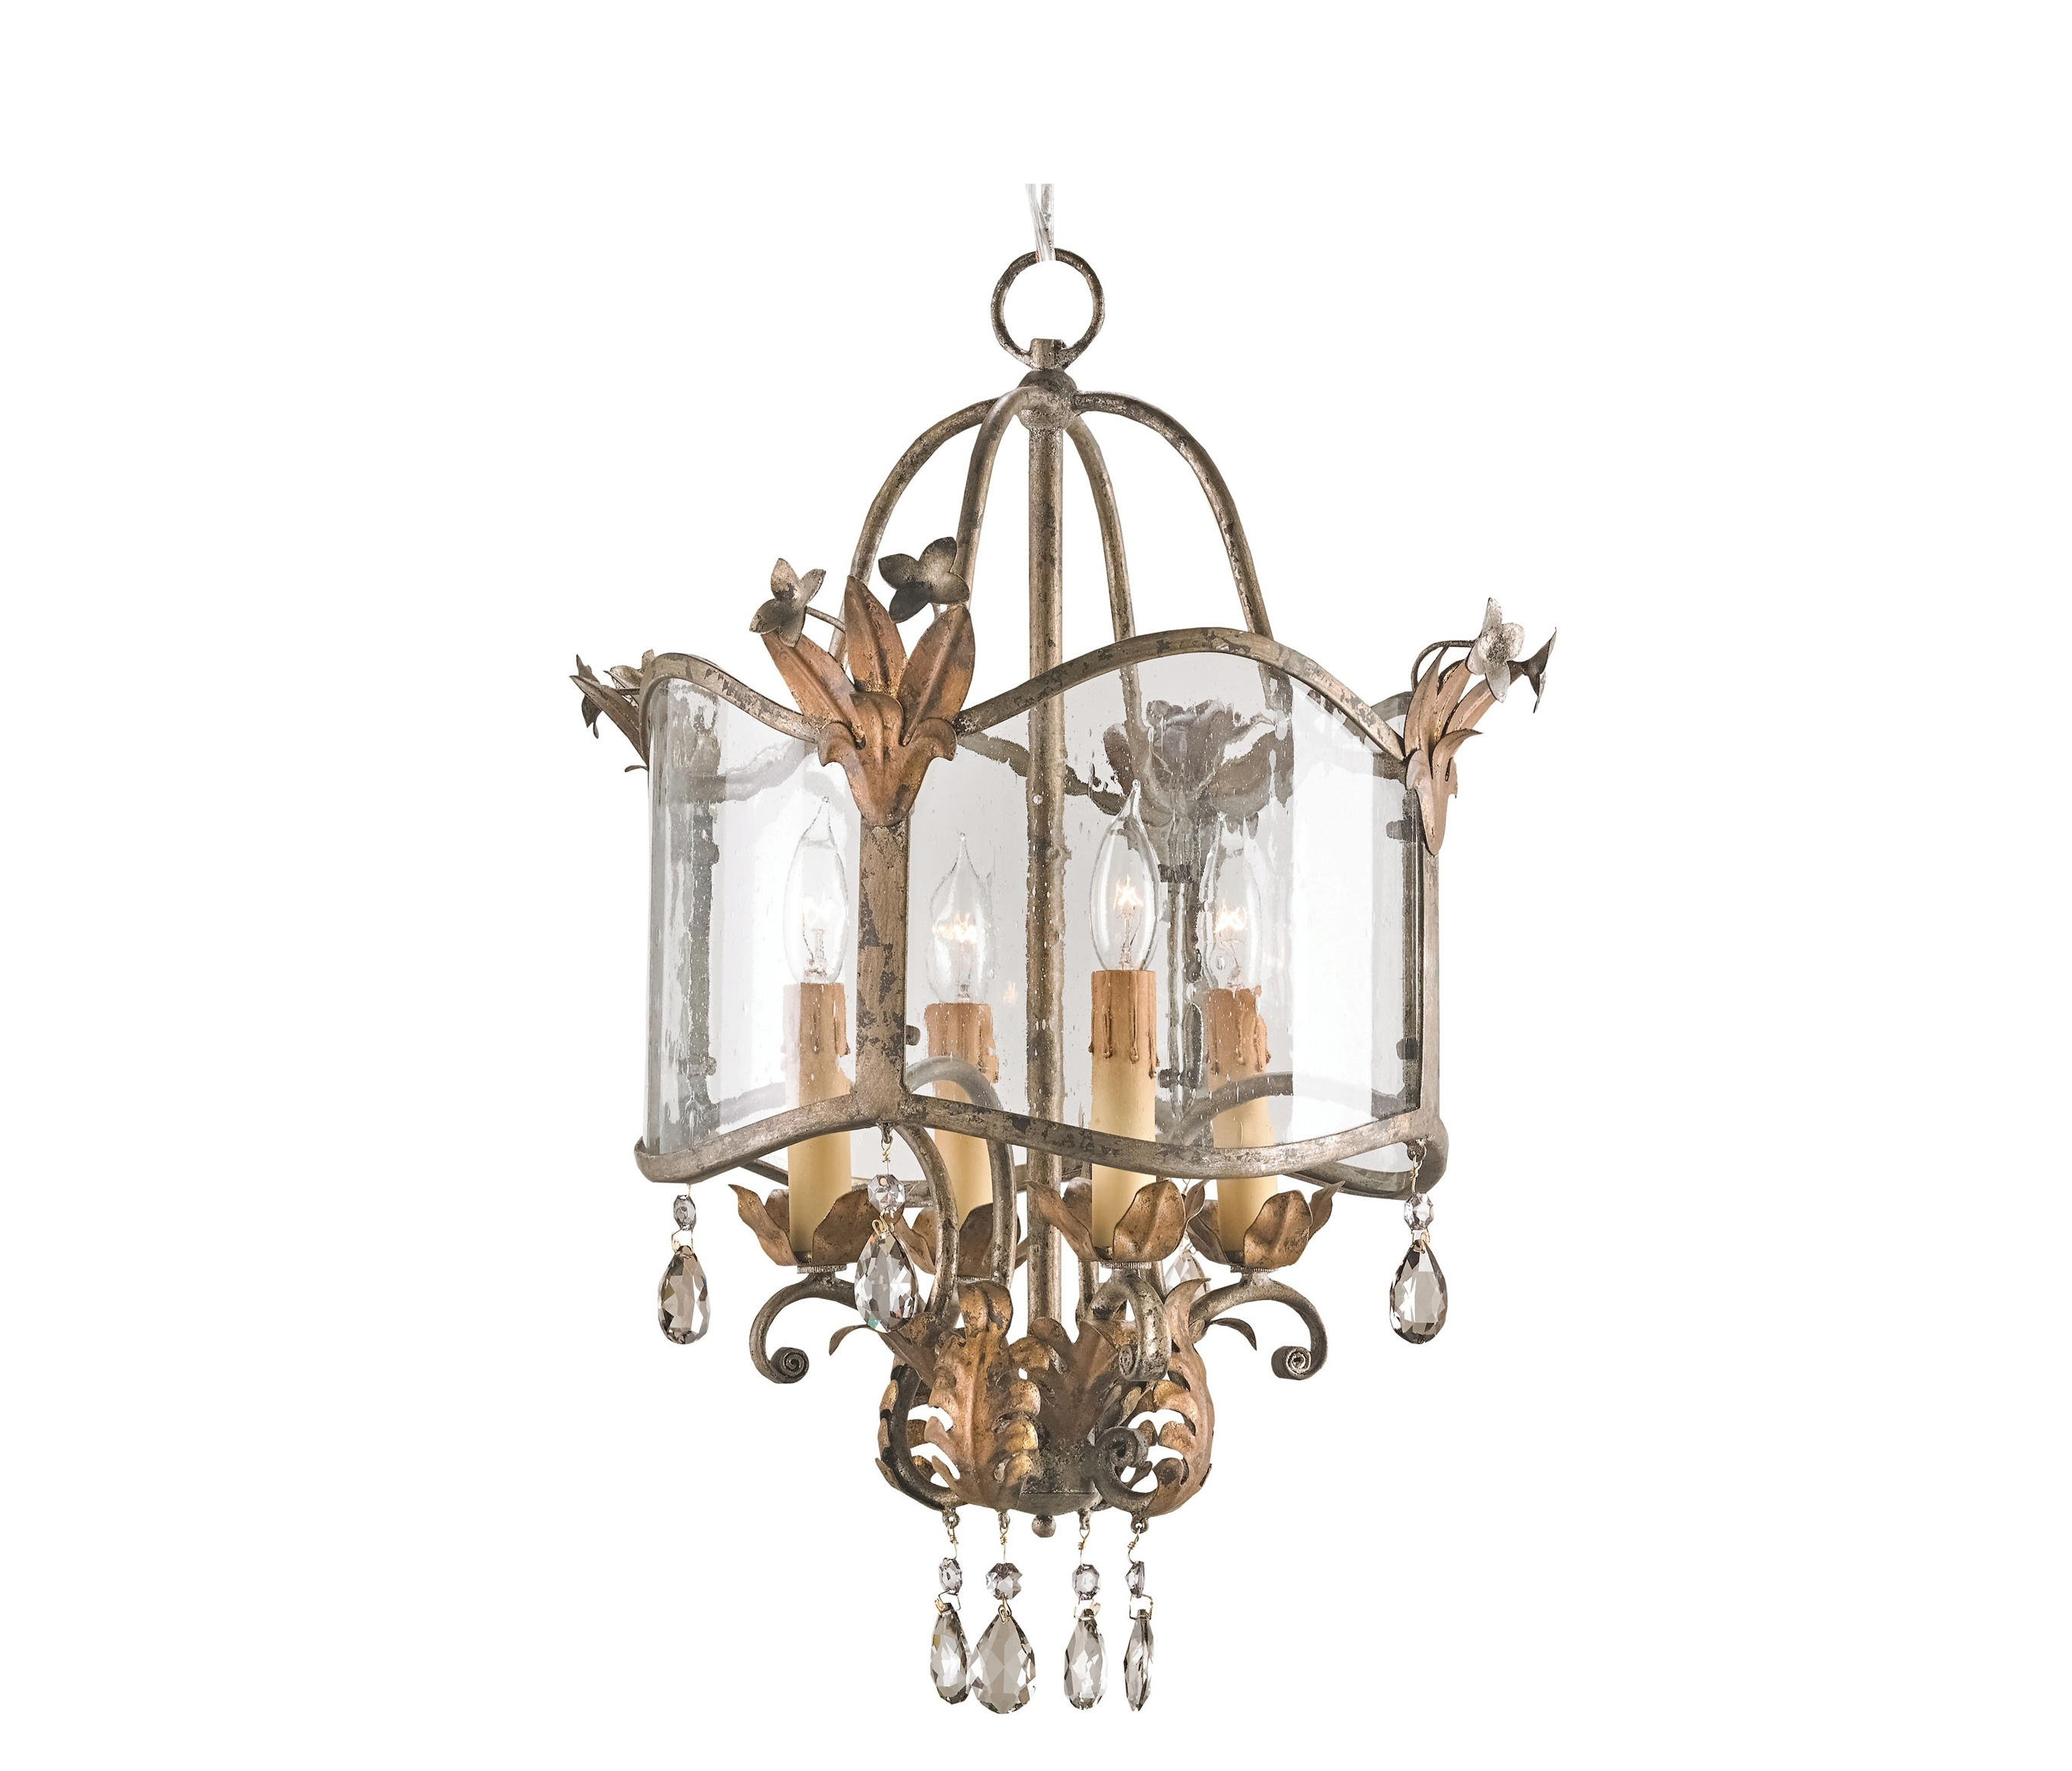 General Lighting From Currey & Company